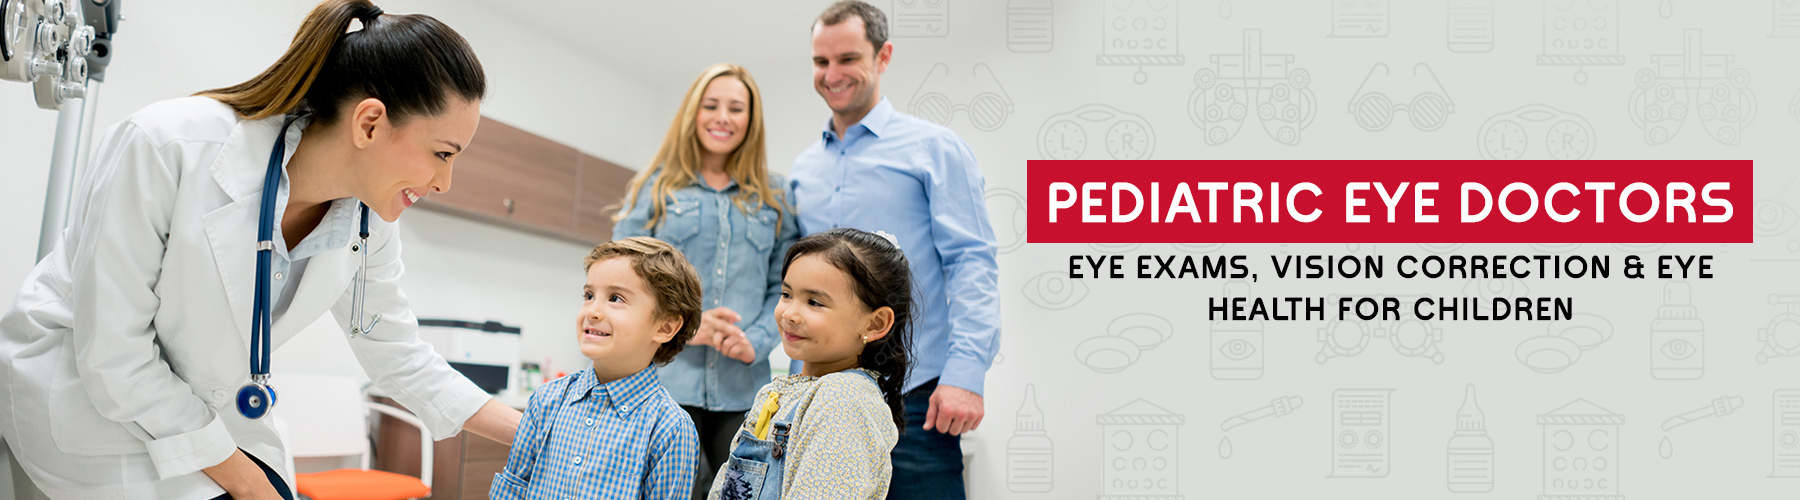 Pediatric eye exams near Chicago